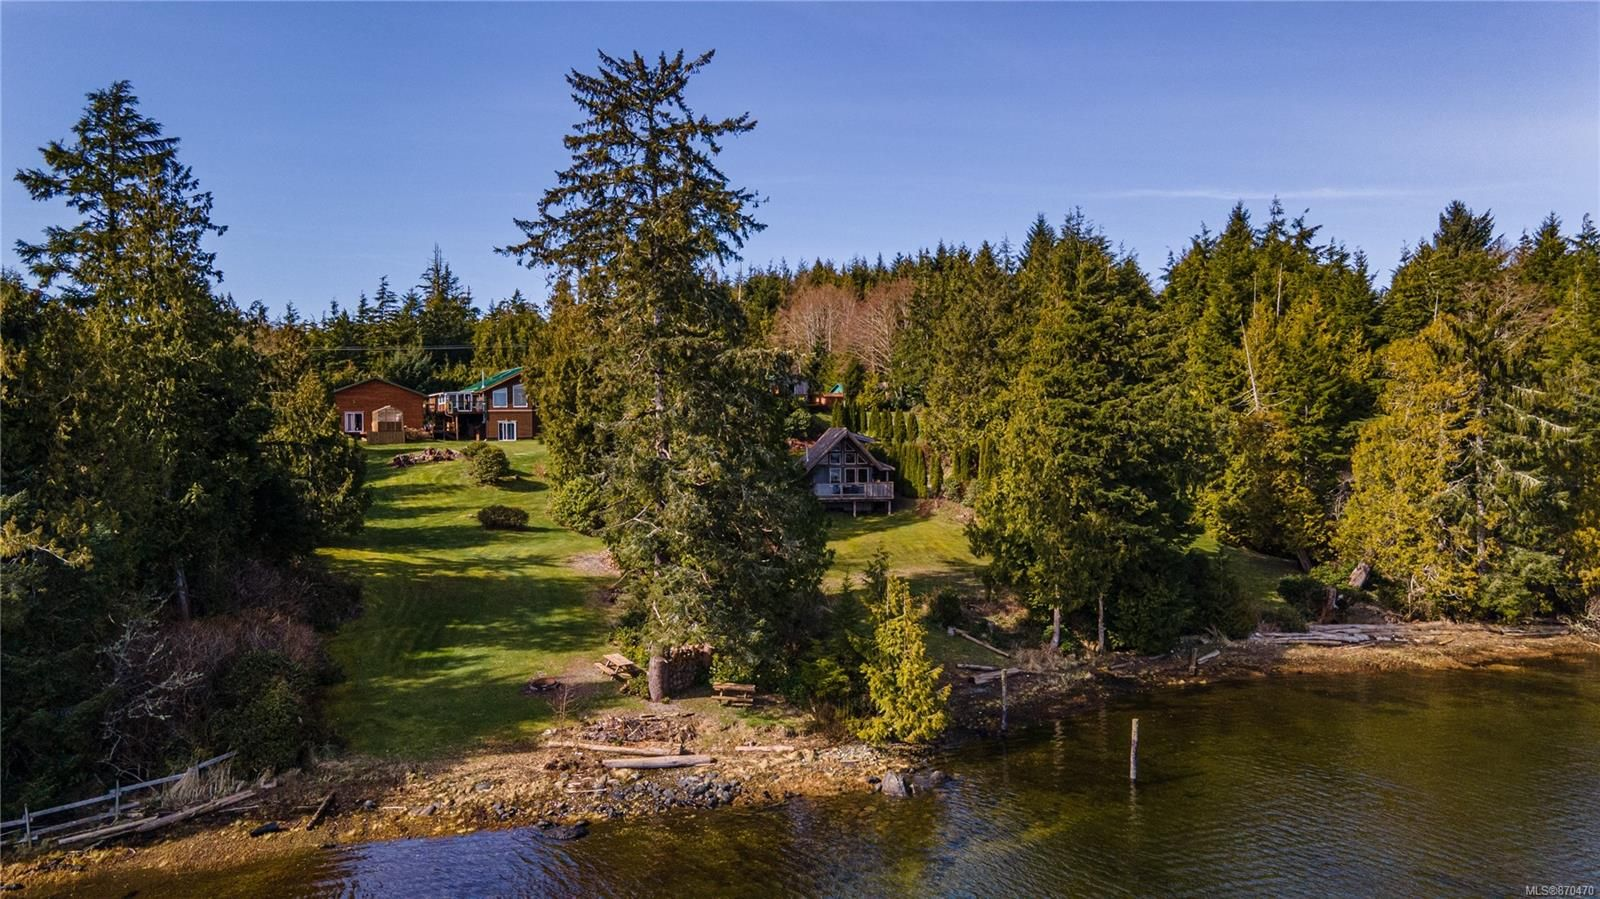 Main Photo: 2345 Tofino-Ucluelet Hwy in : PA Ucluelet Mixed Use for sale (Port Alberni)  : MLS®# 870470